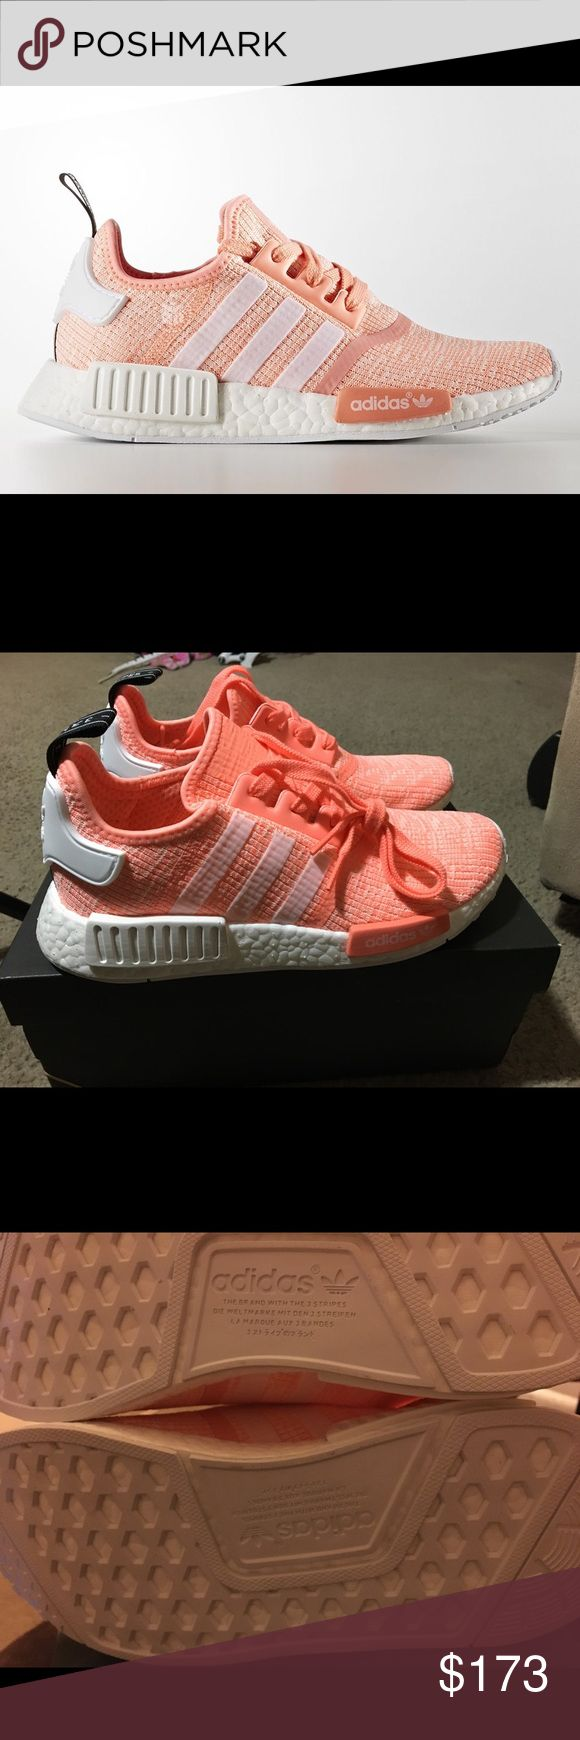 adidas NMD XR1 Dropping in